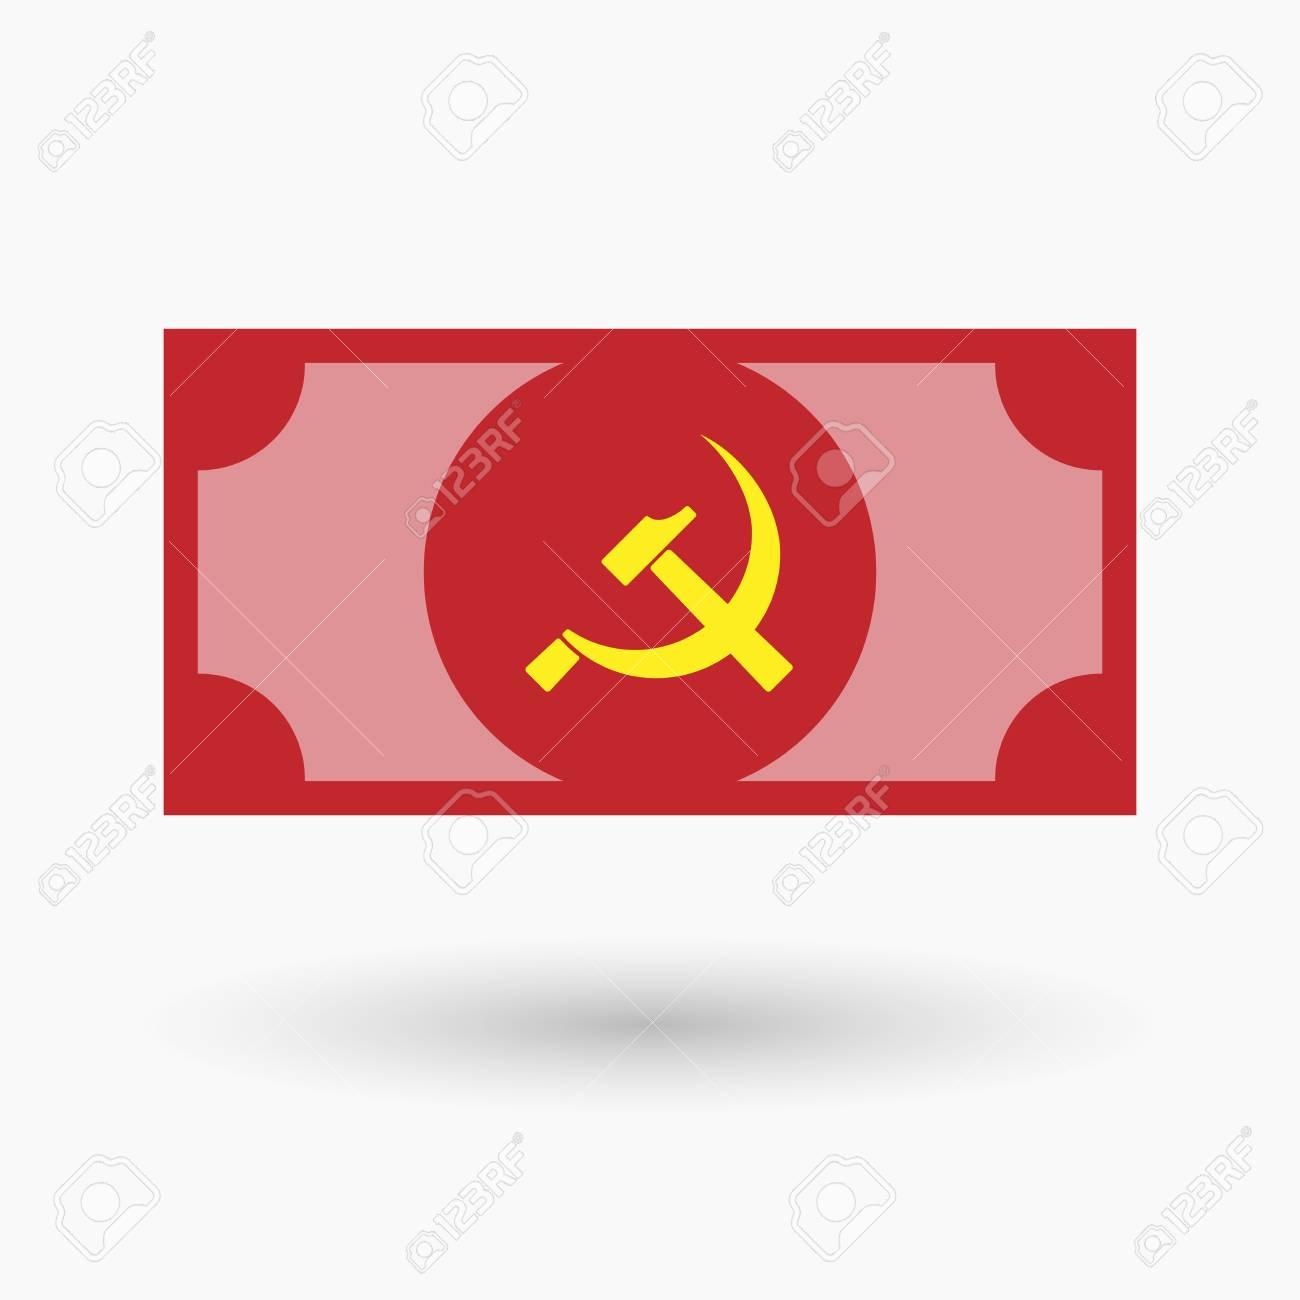 Illustration Of An Isolated Bank Note With The Communist Symbol